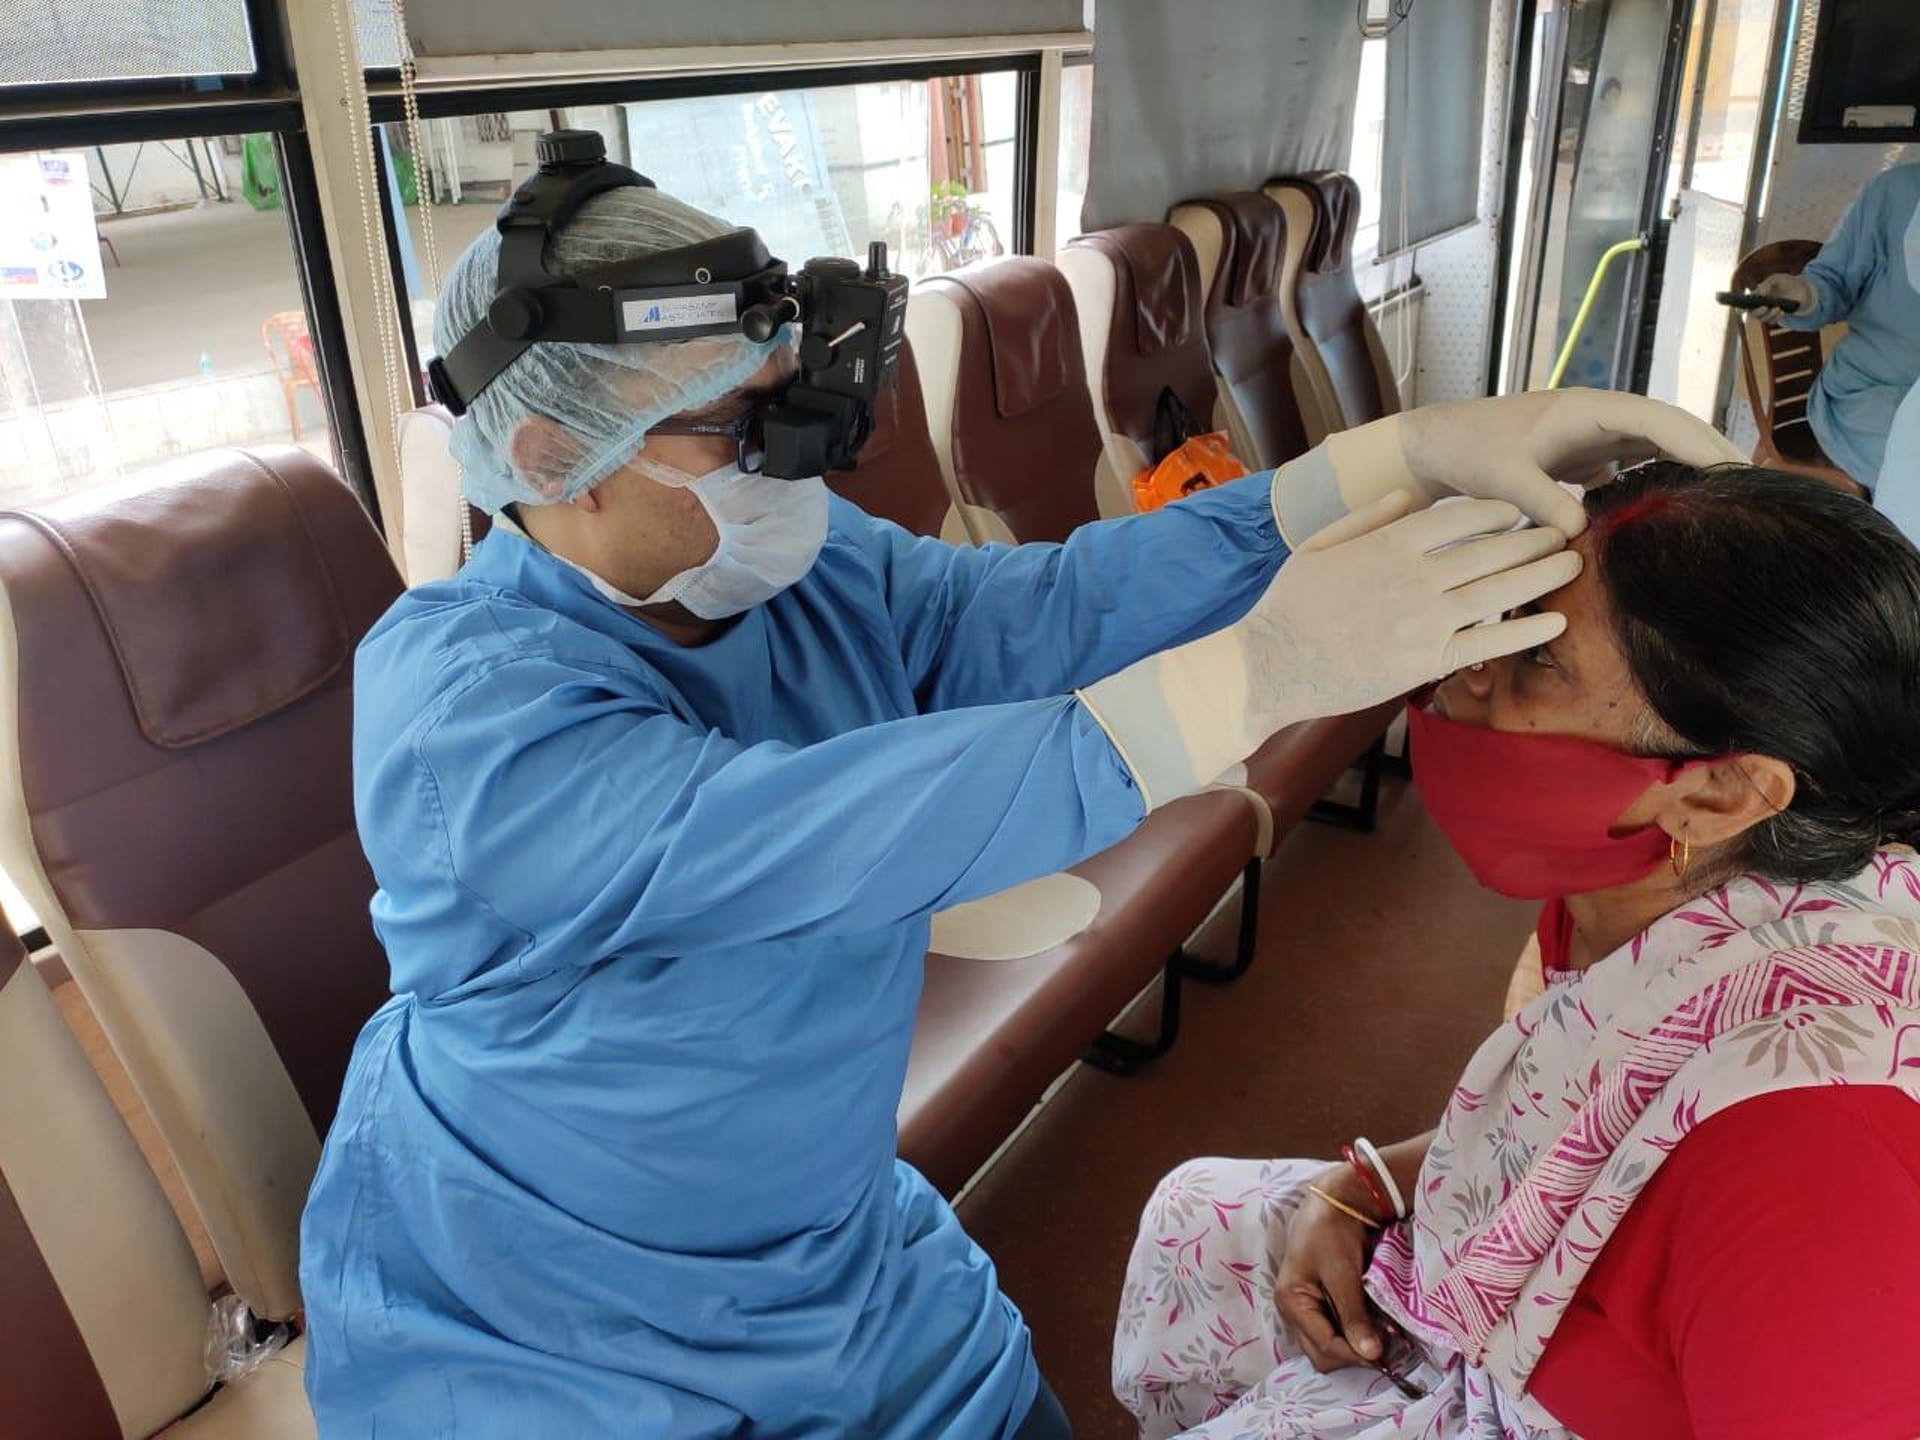 A woman is screened on board a vision van in Kolkata, India